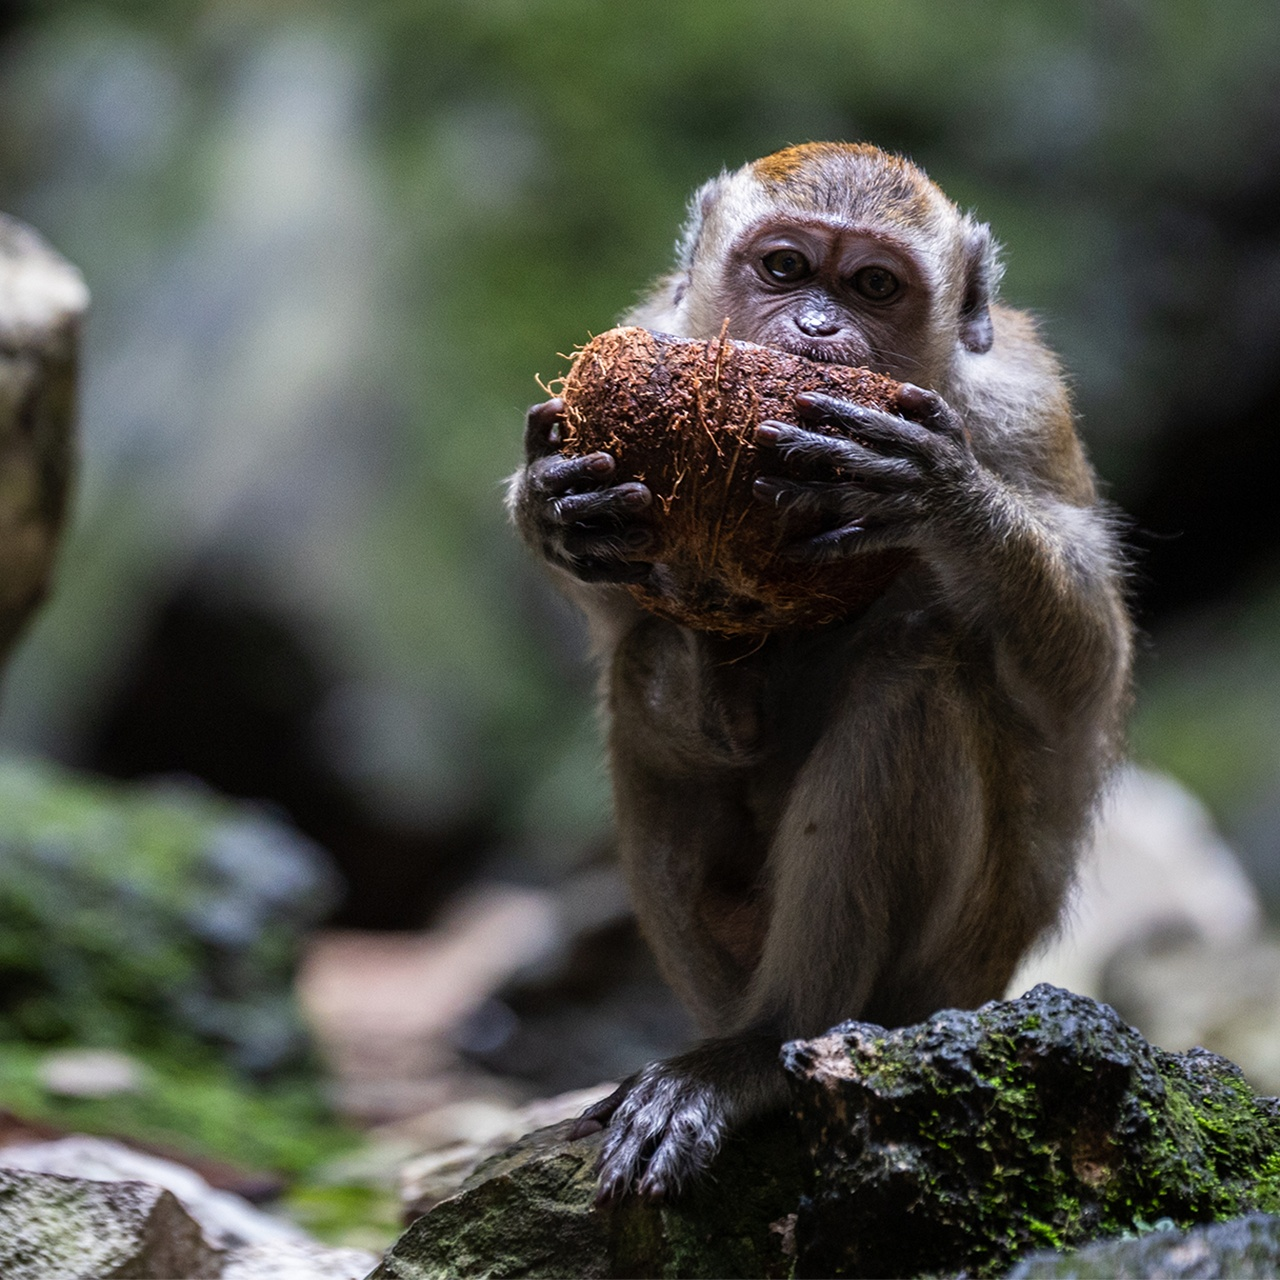 Long-Tailed Macaque Eating a Coconut